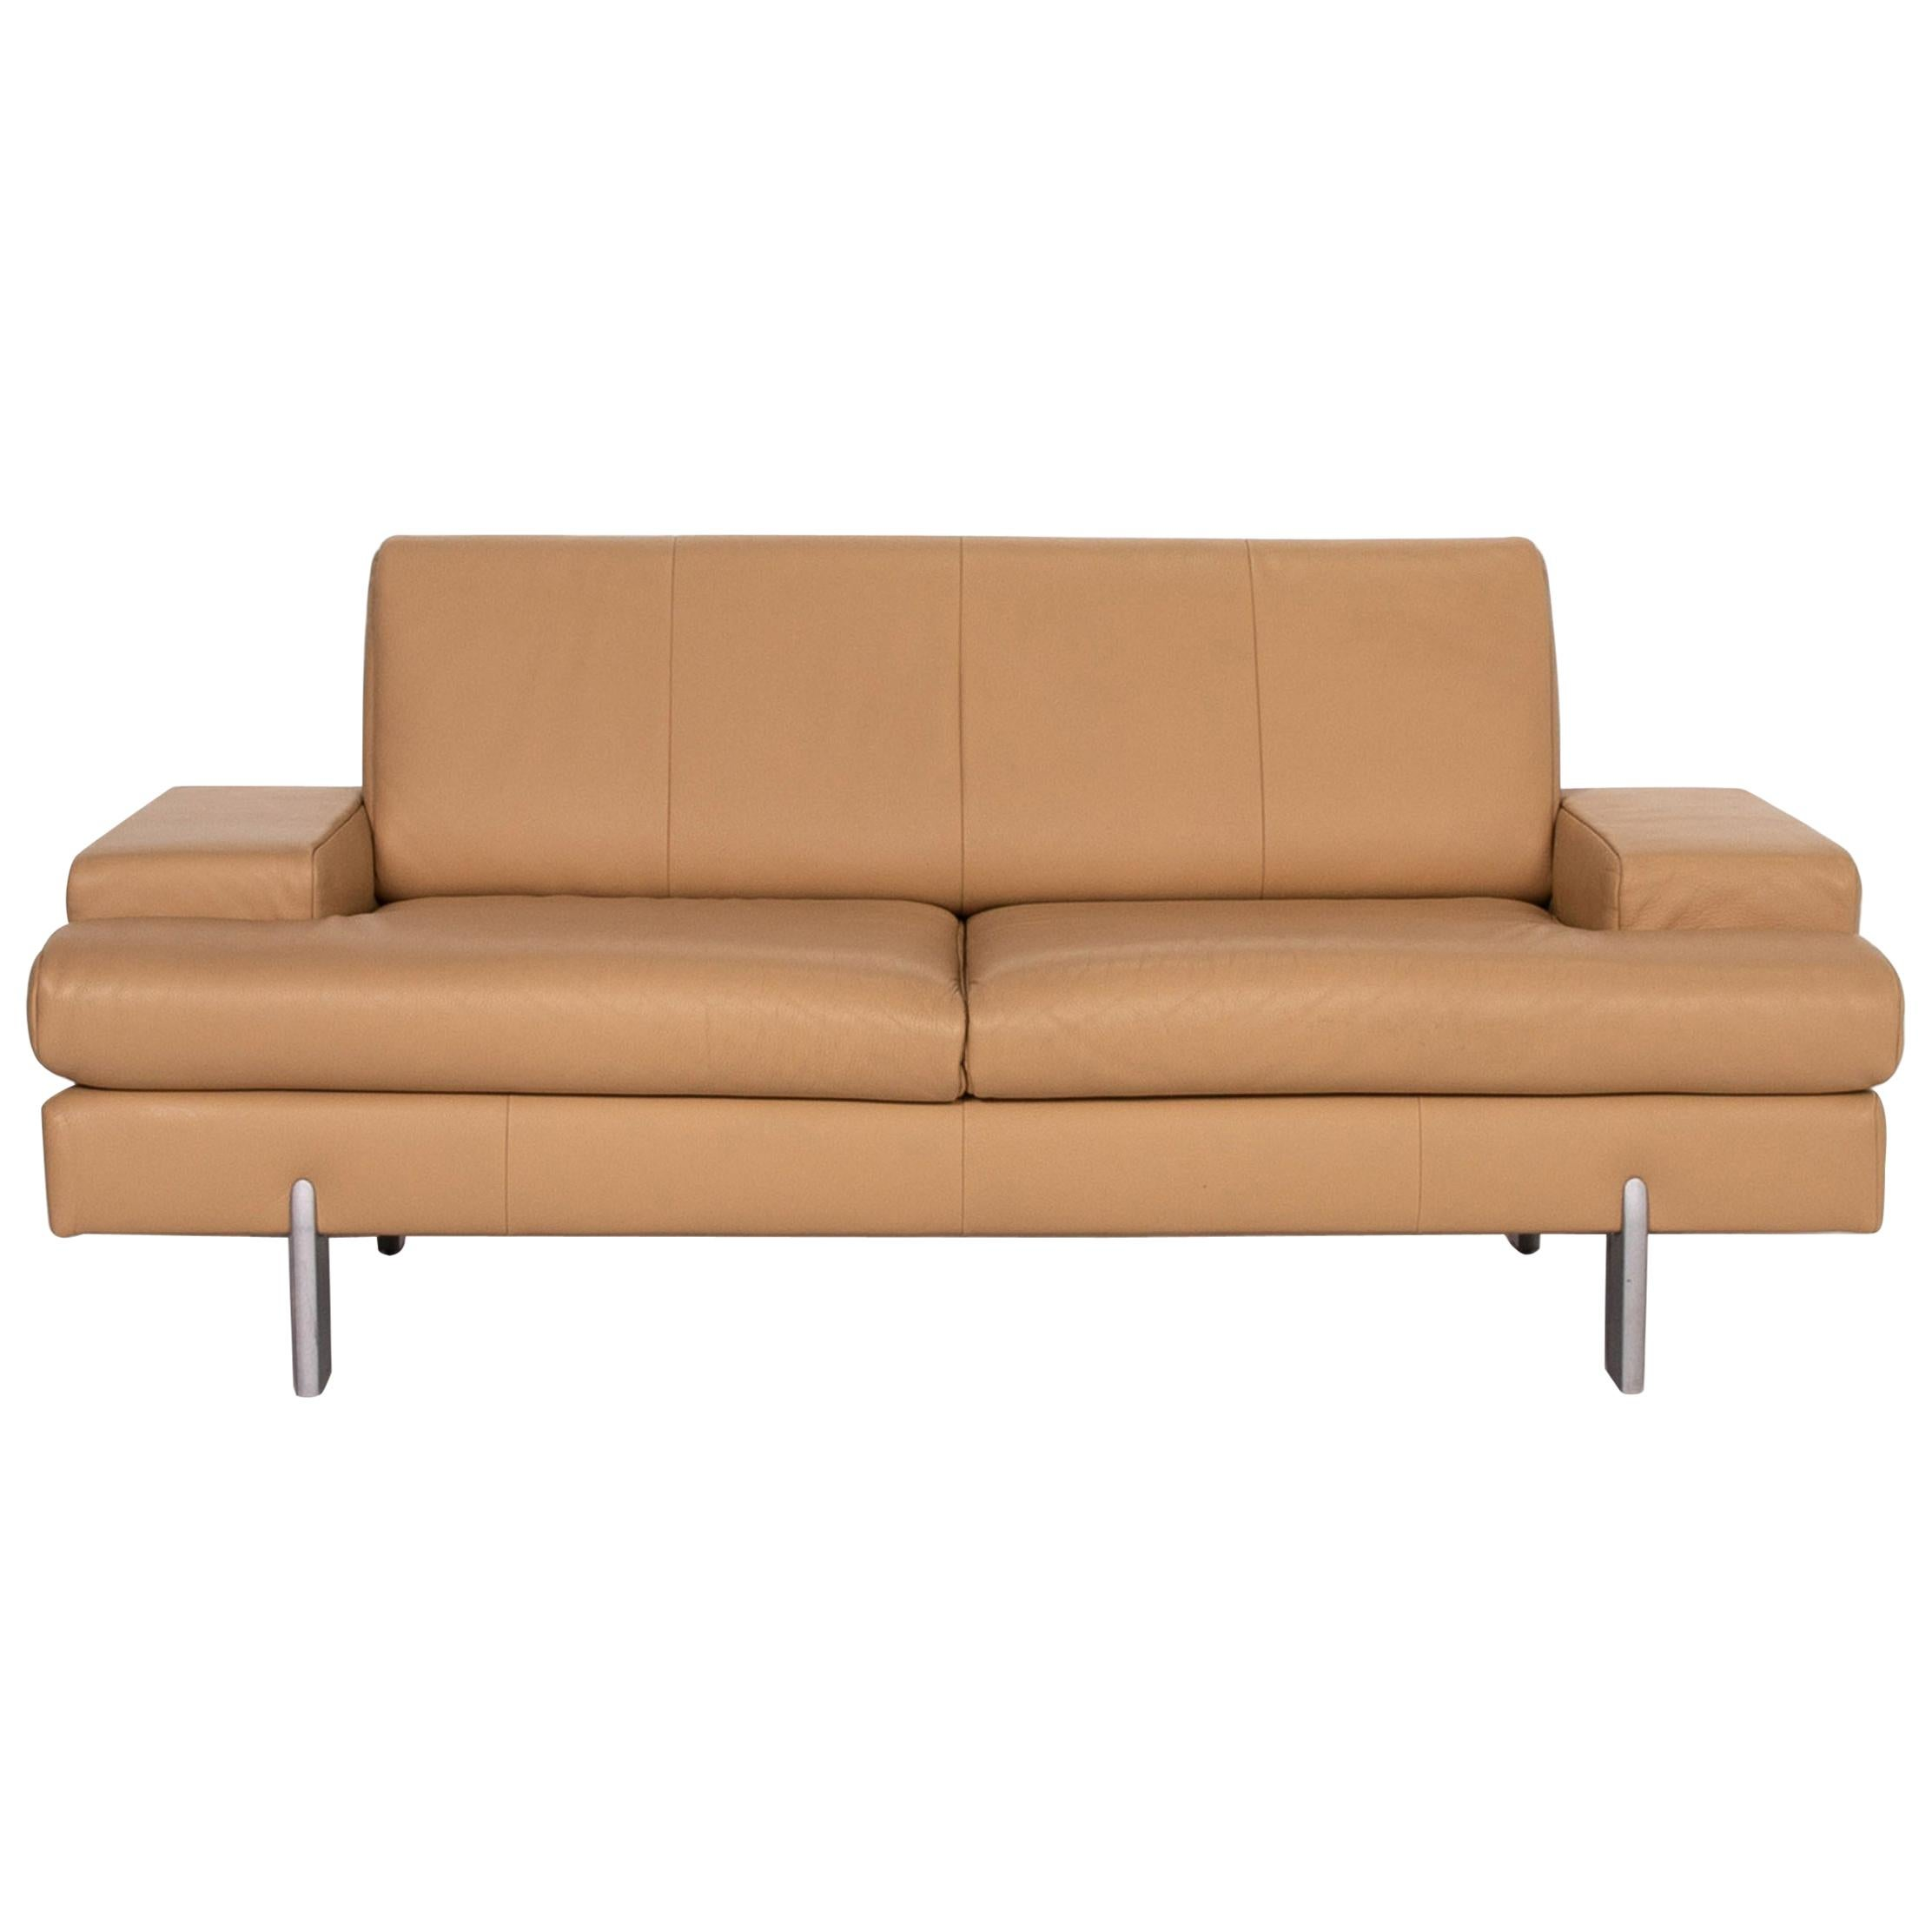 Rolf Benz AK 644 Leather Sofa Beige Two-Seat Couch